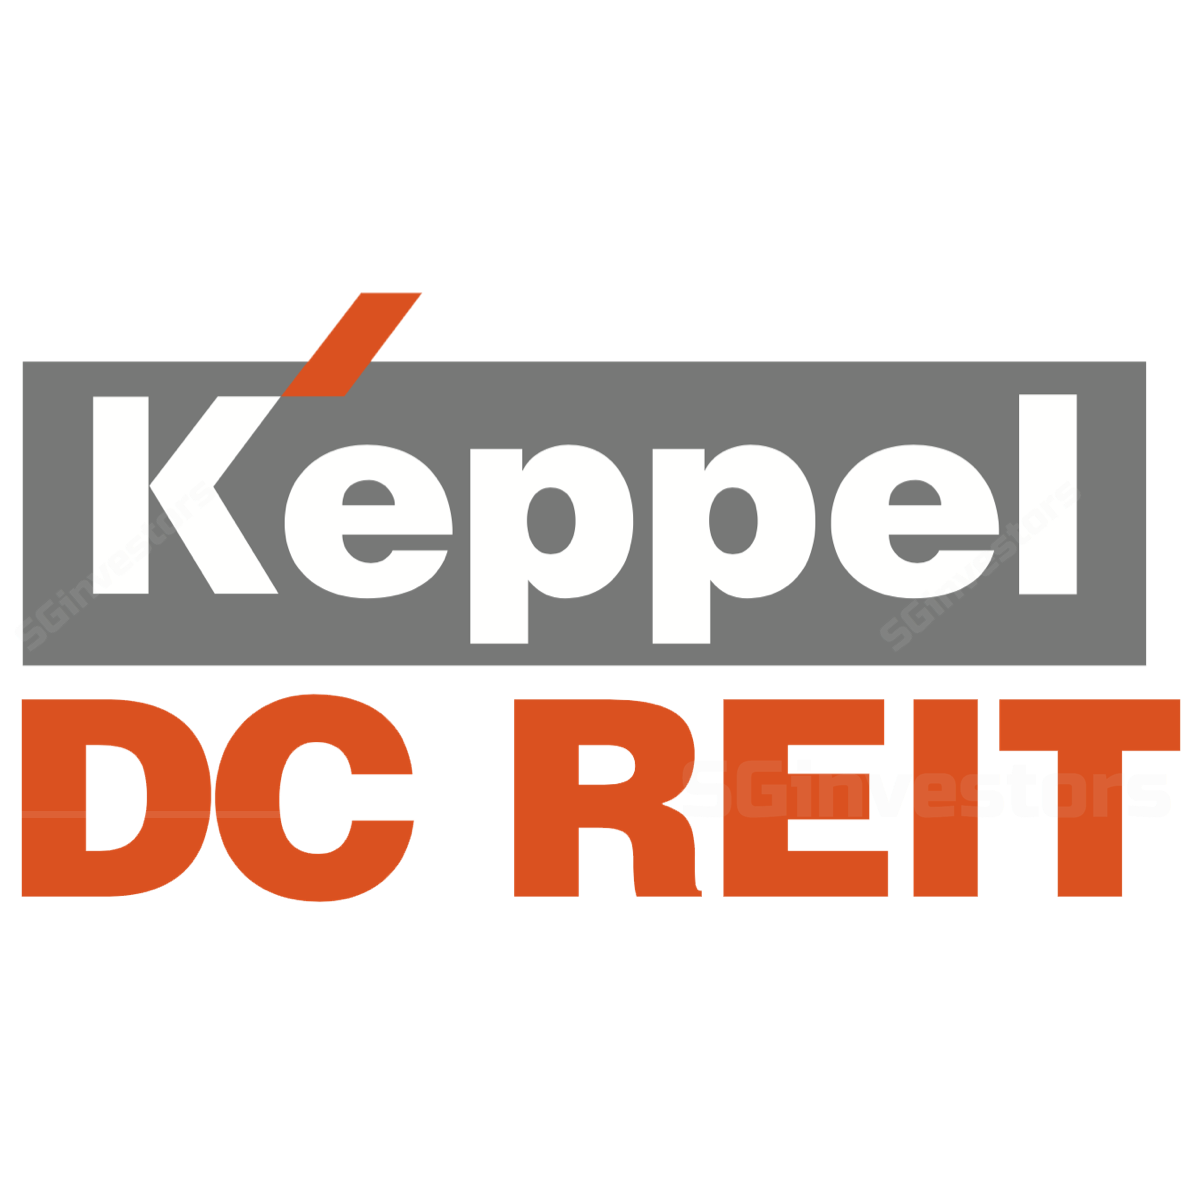 Keppel DC REIT - CIMB Research 2017-04-17: Boosted by acquisitions